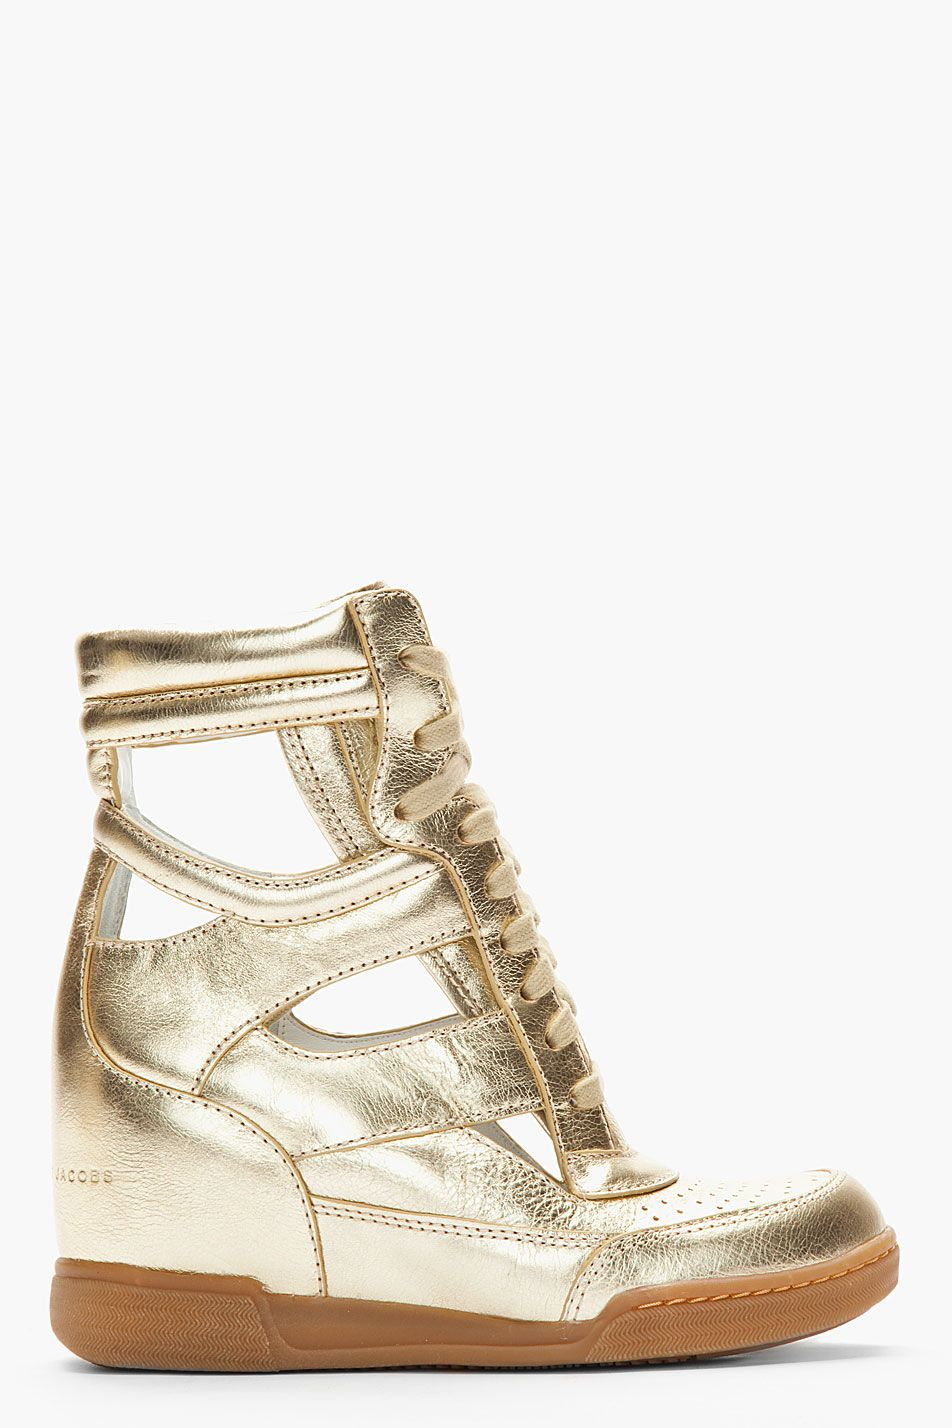 5516d2c45aaa MARC BY MARC JACOBS Metallic Gold Leather Cut-Out Sneaker Wedges ...